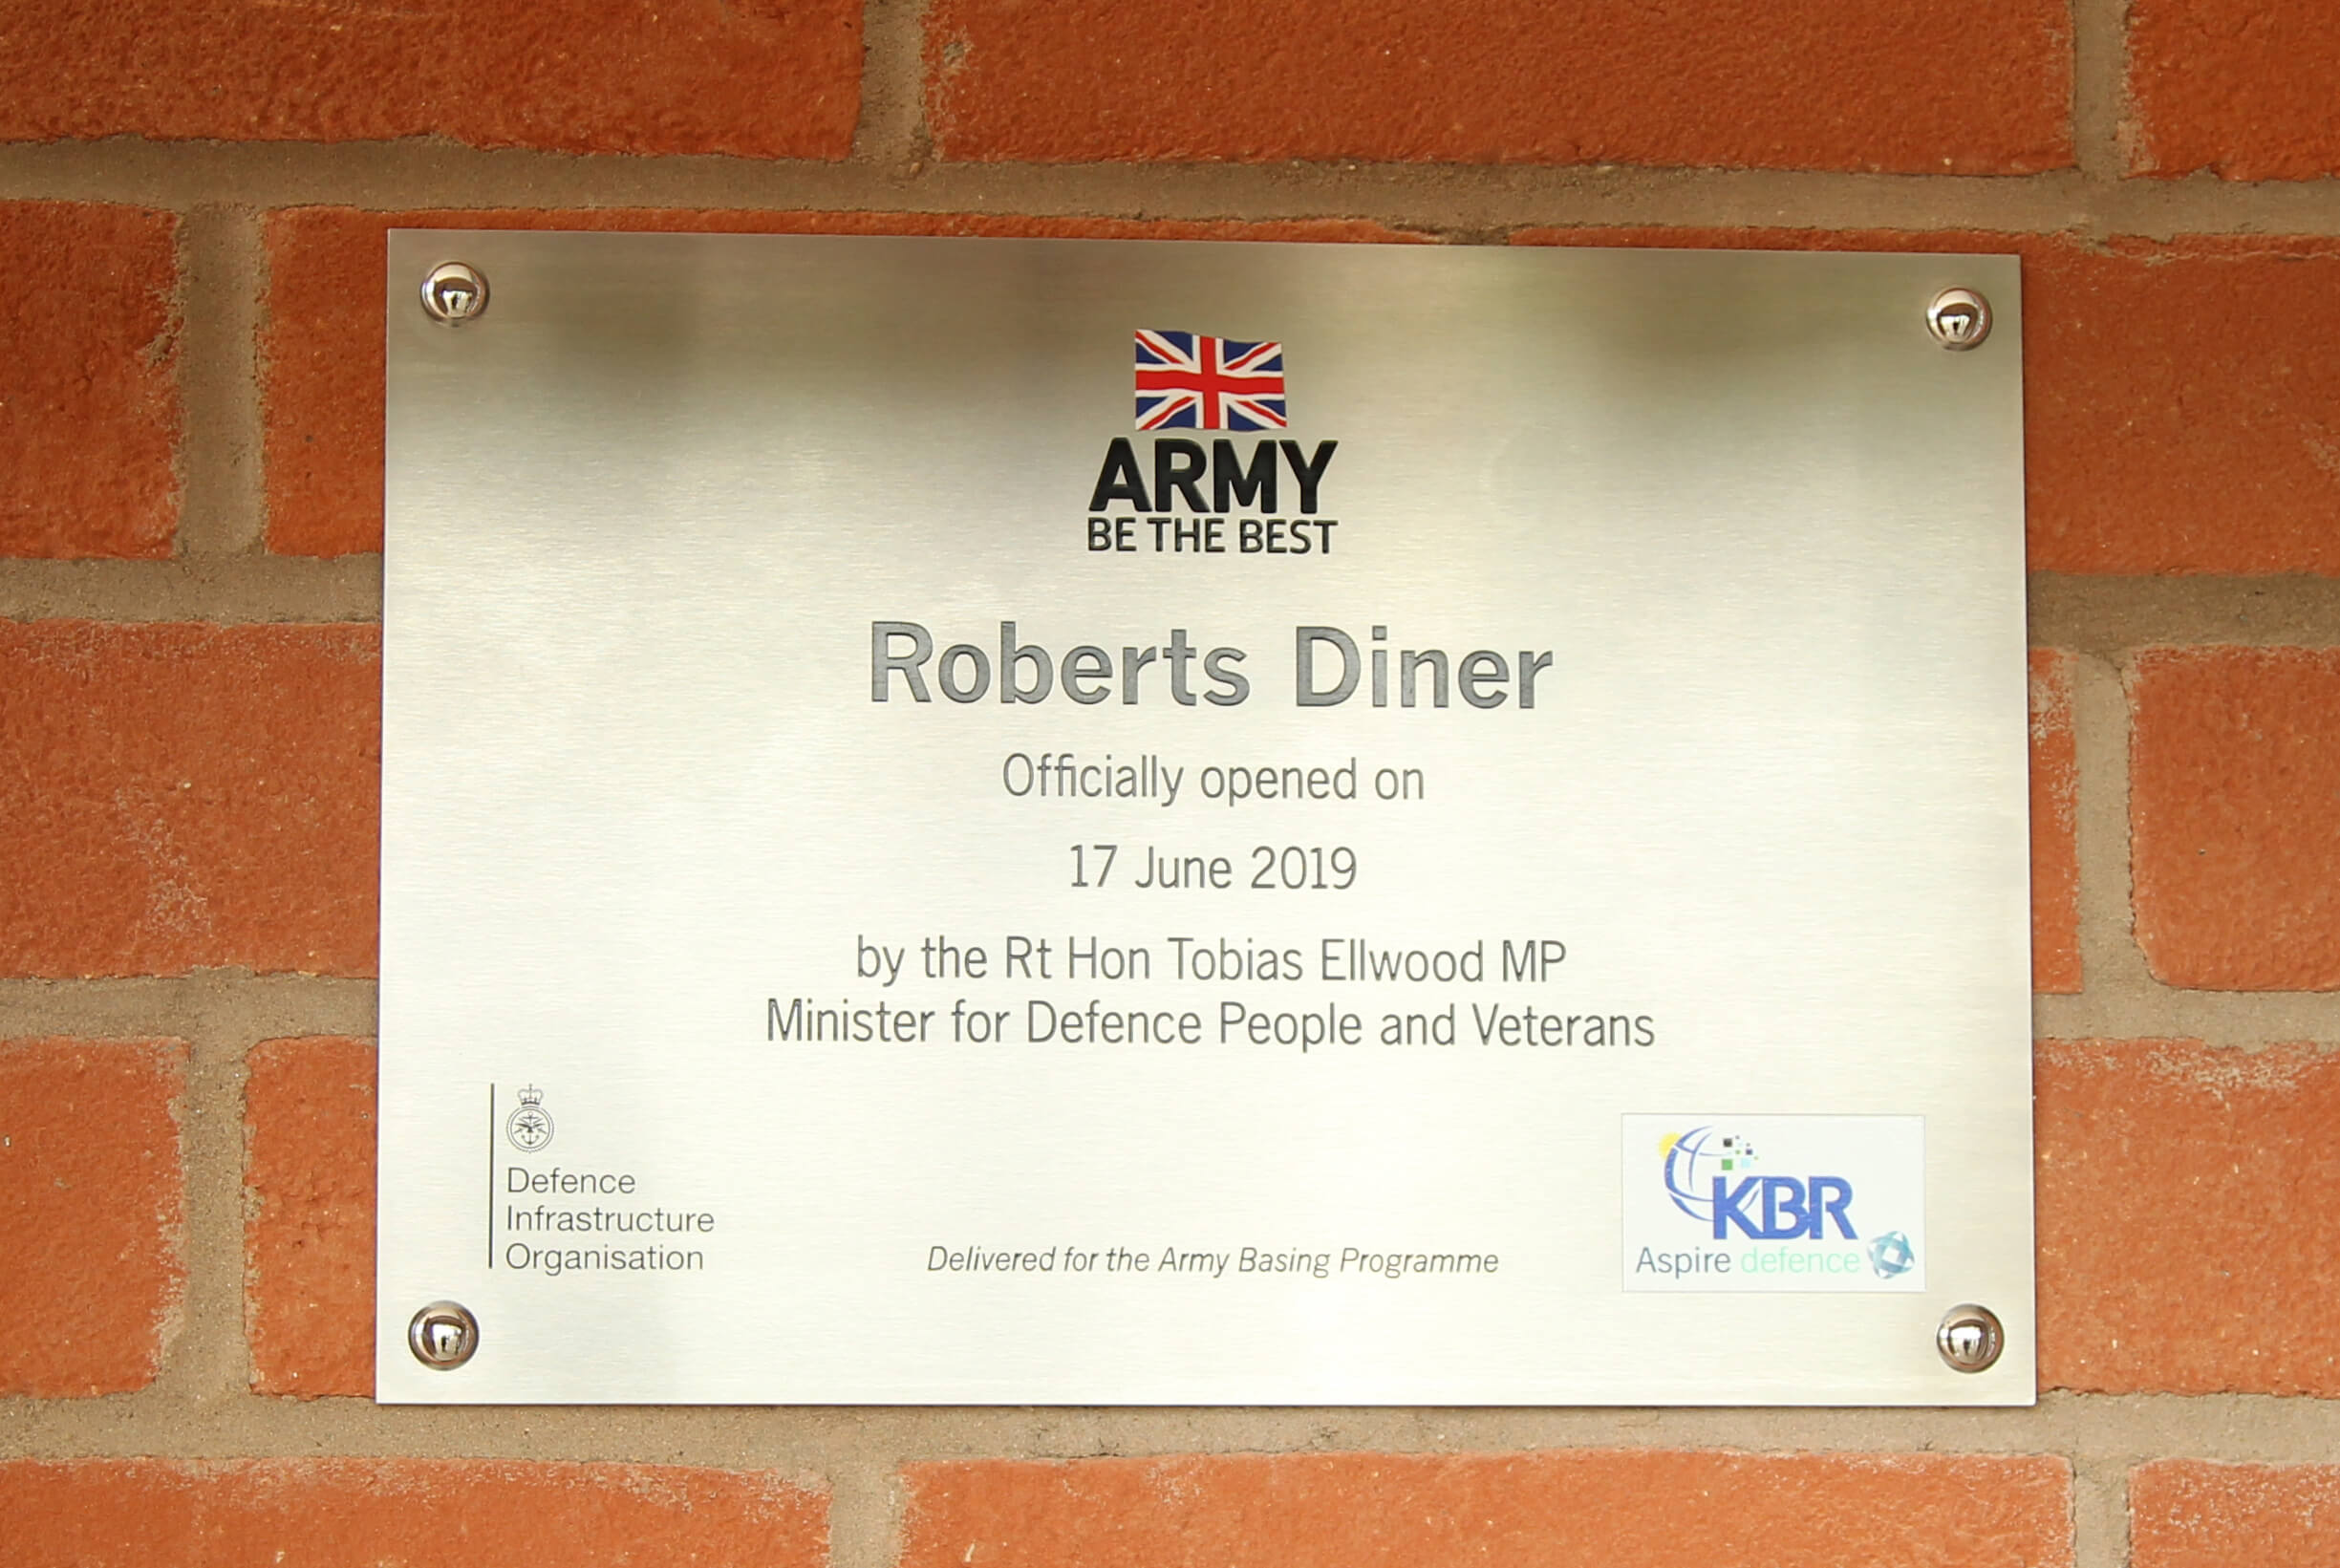 Roberts Diner Official Opening (Plaque)